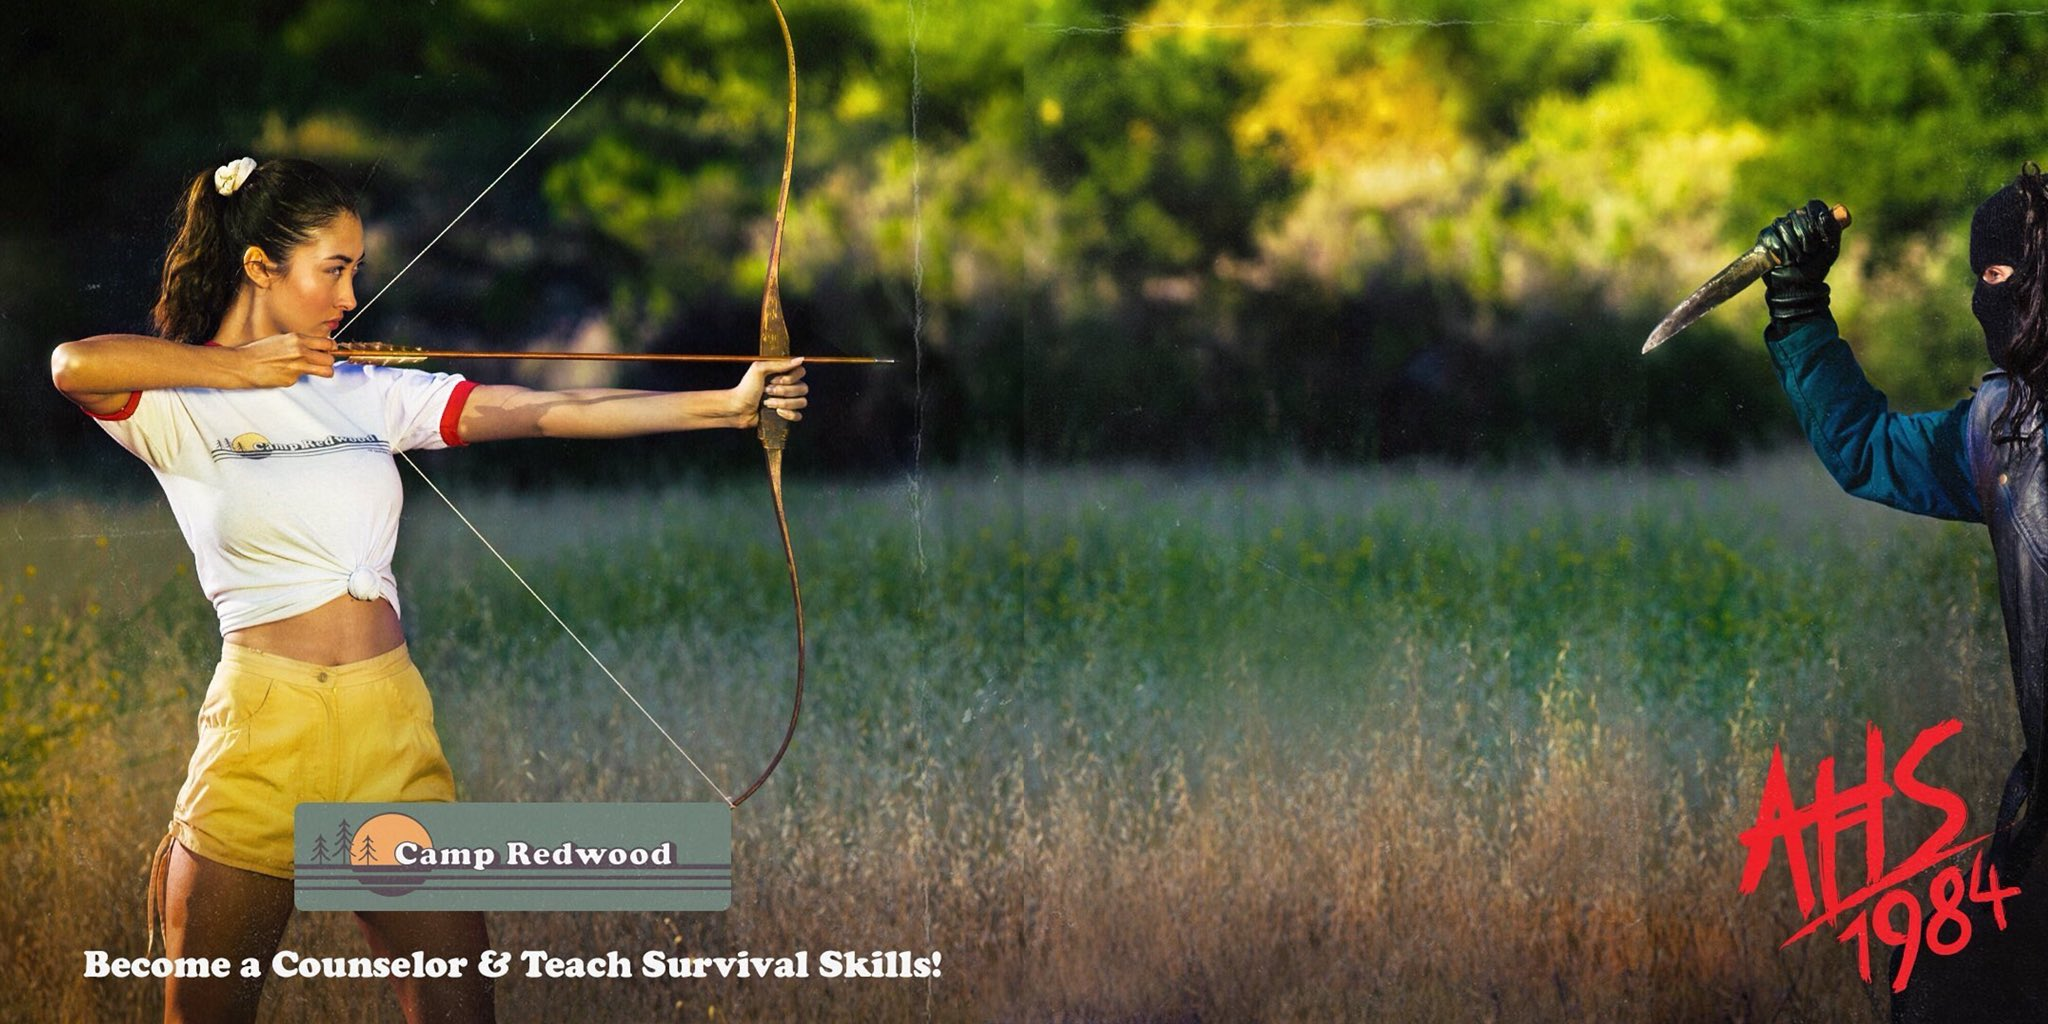 S9 Counselor Poster 02 Teach Survival Skills.jpeg